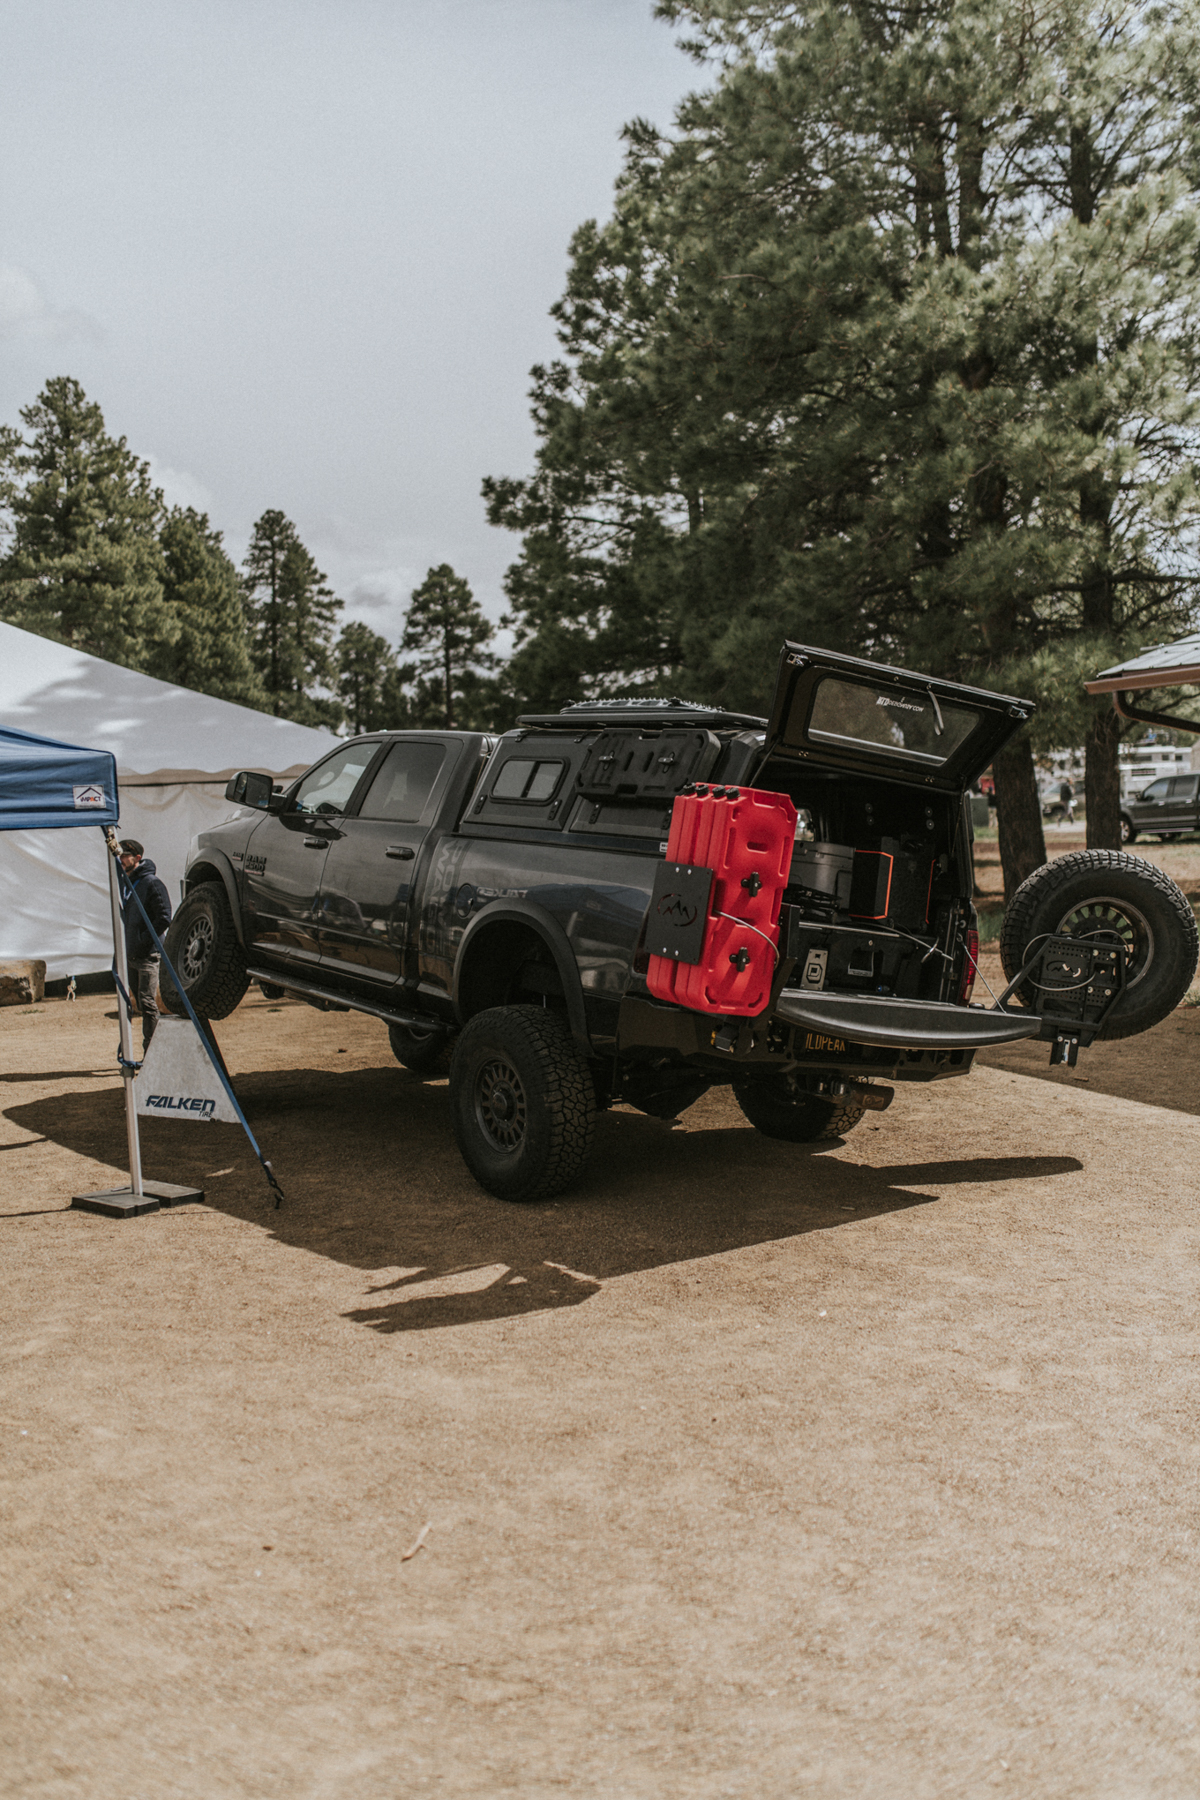 overland_expo_roaming_lost-92.jpg